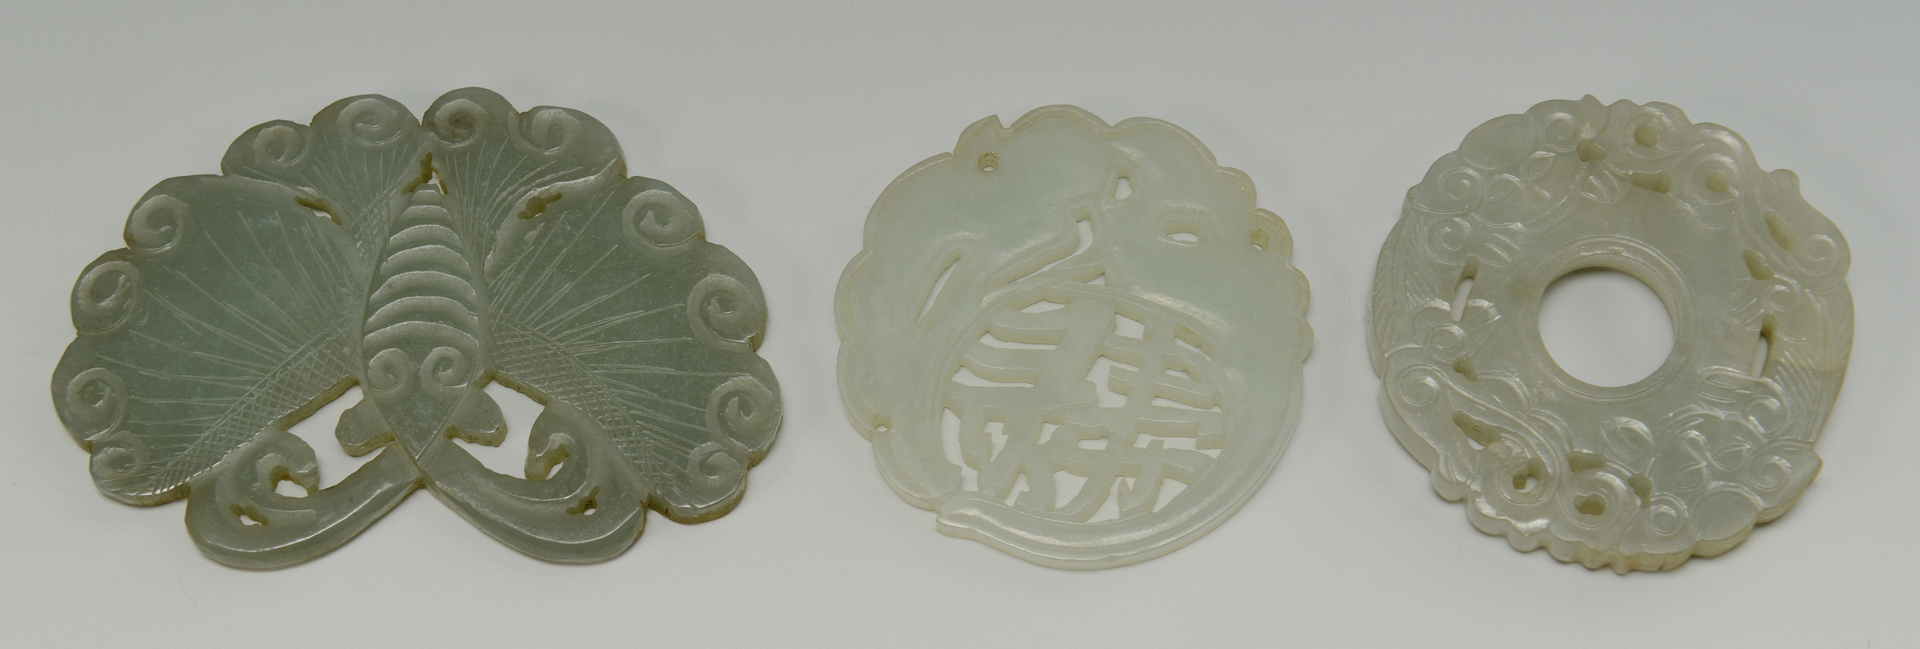 Lot 3088269: 3 Carved Chinese Jade Plaques